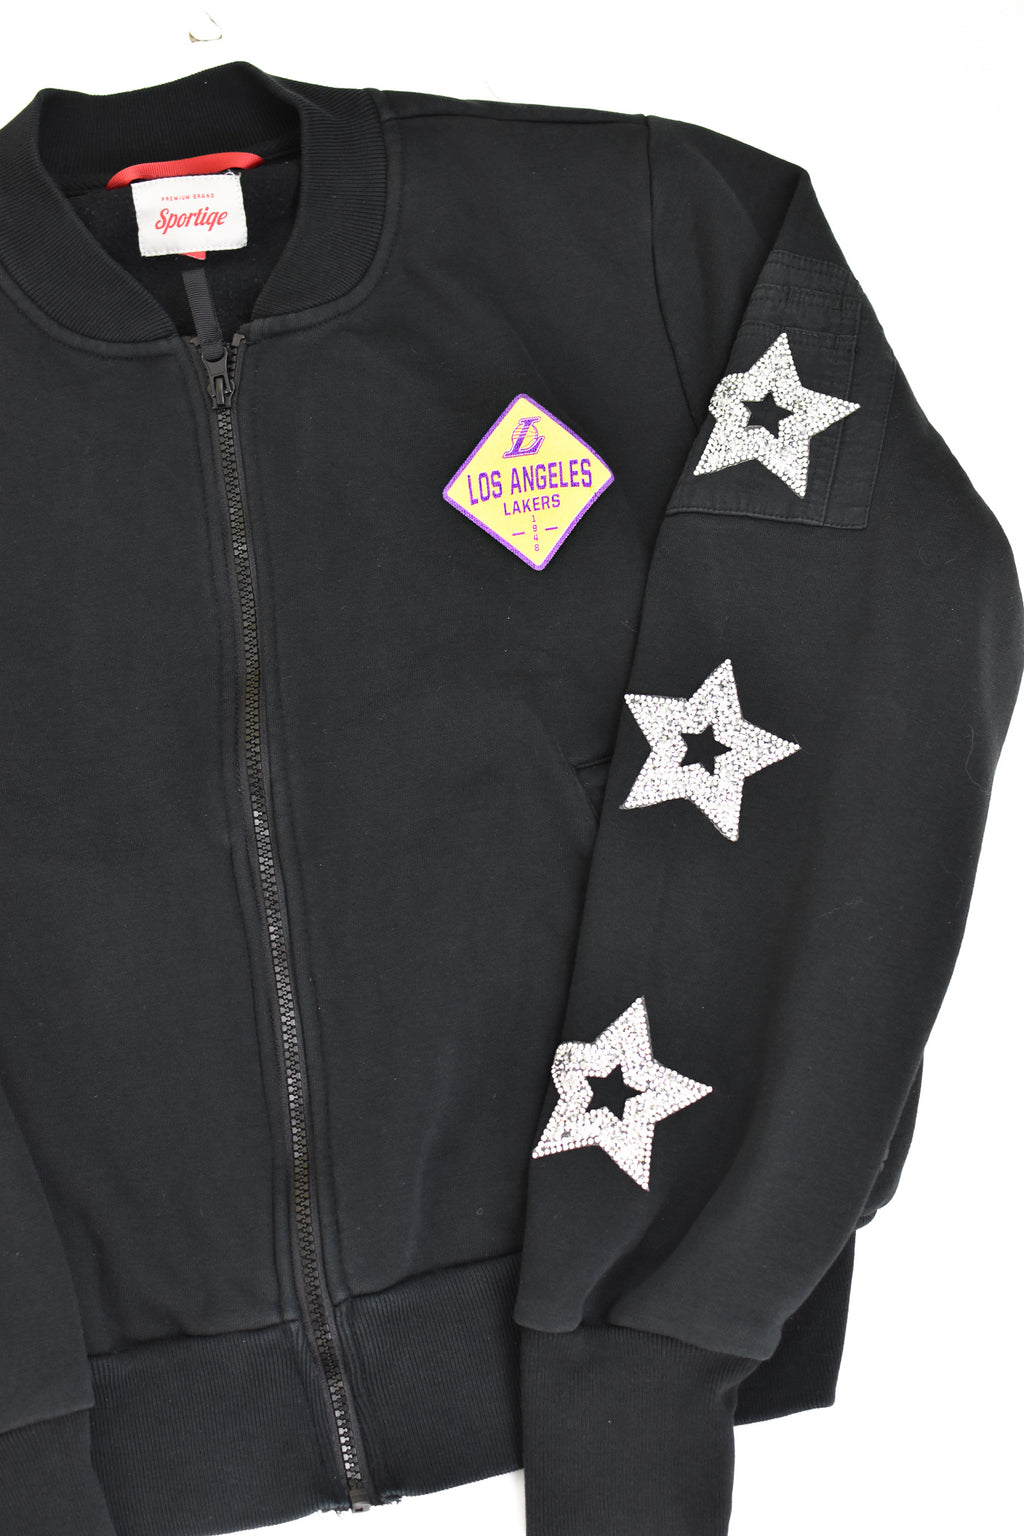 Upcycled Los Angeles Lakers Star Rhinestone Sweatshirt